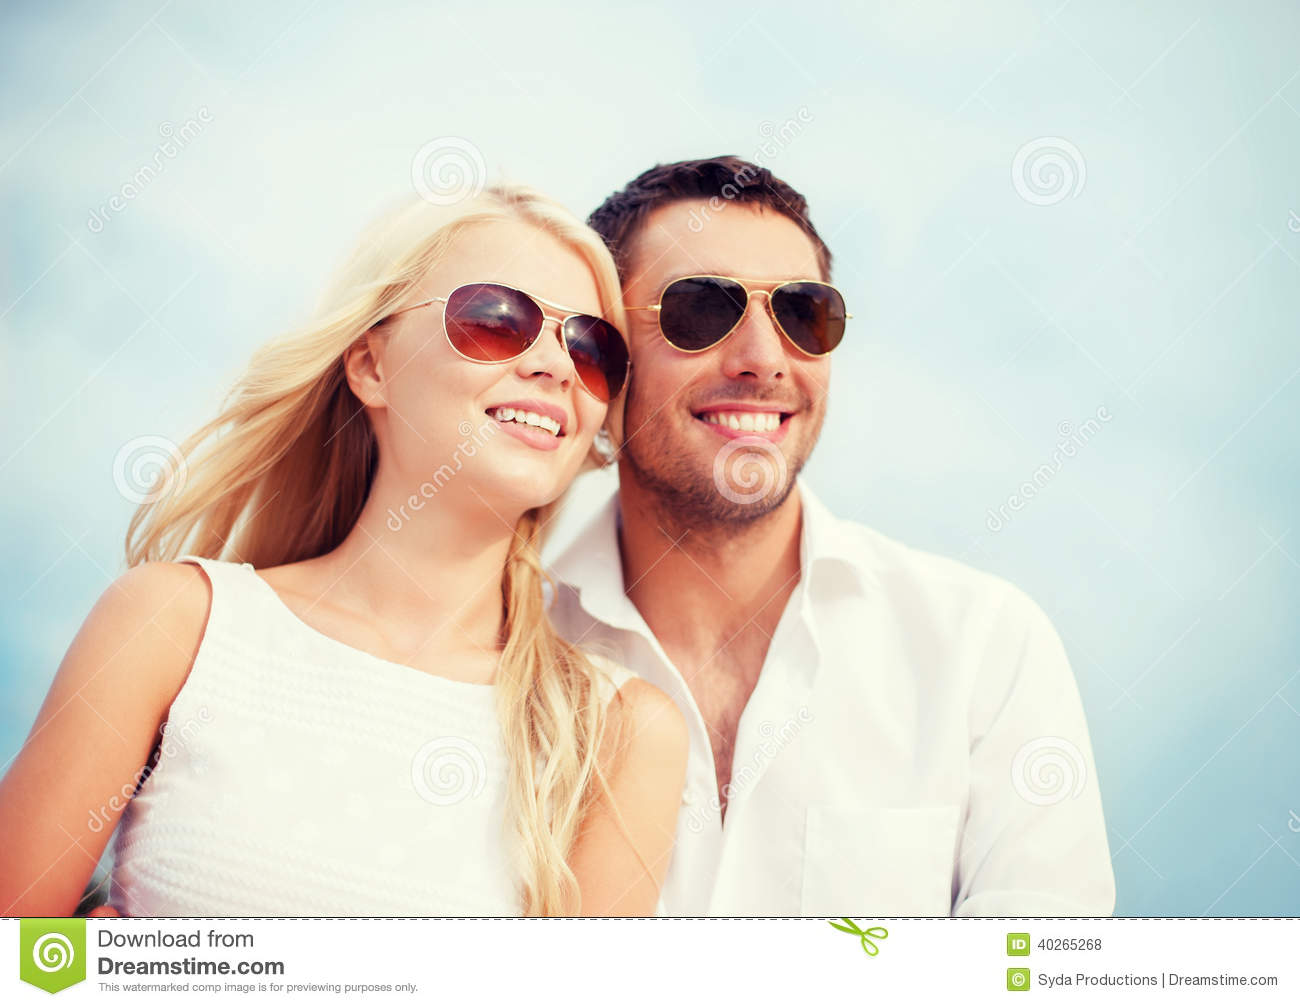 summer shade catholic singles Search the world's information, including webpages, images, videos and more google has many special features to help you find exactly what you're looking for.